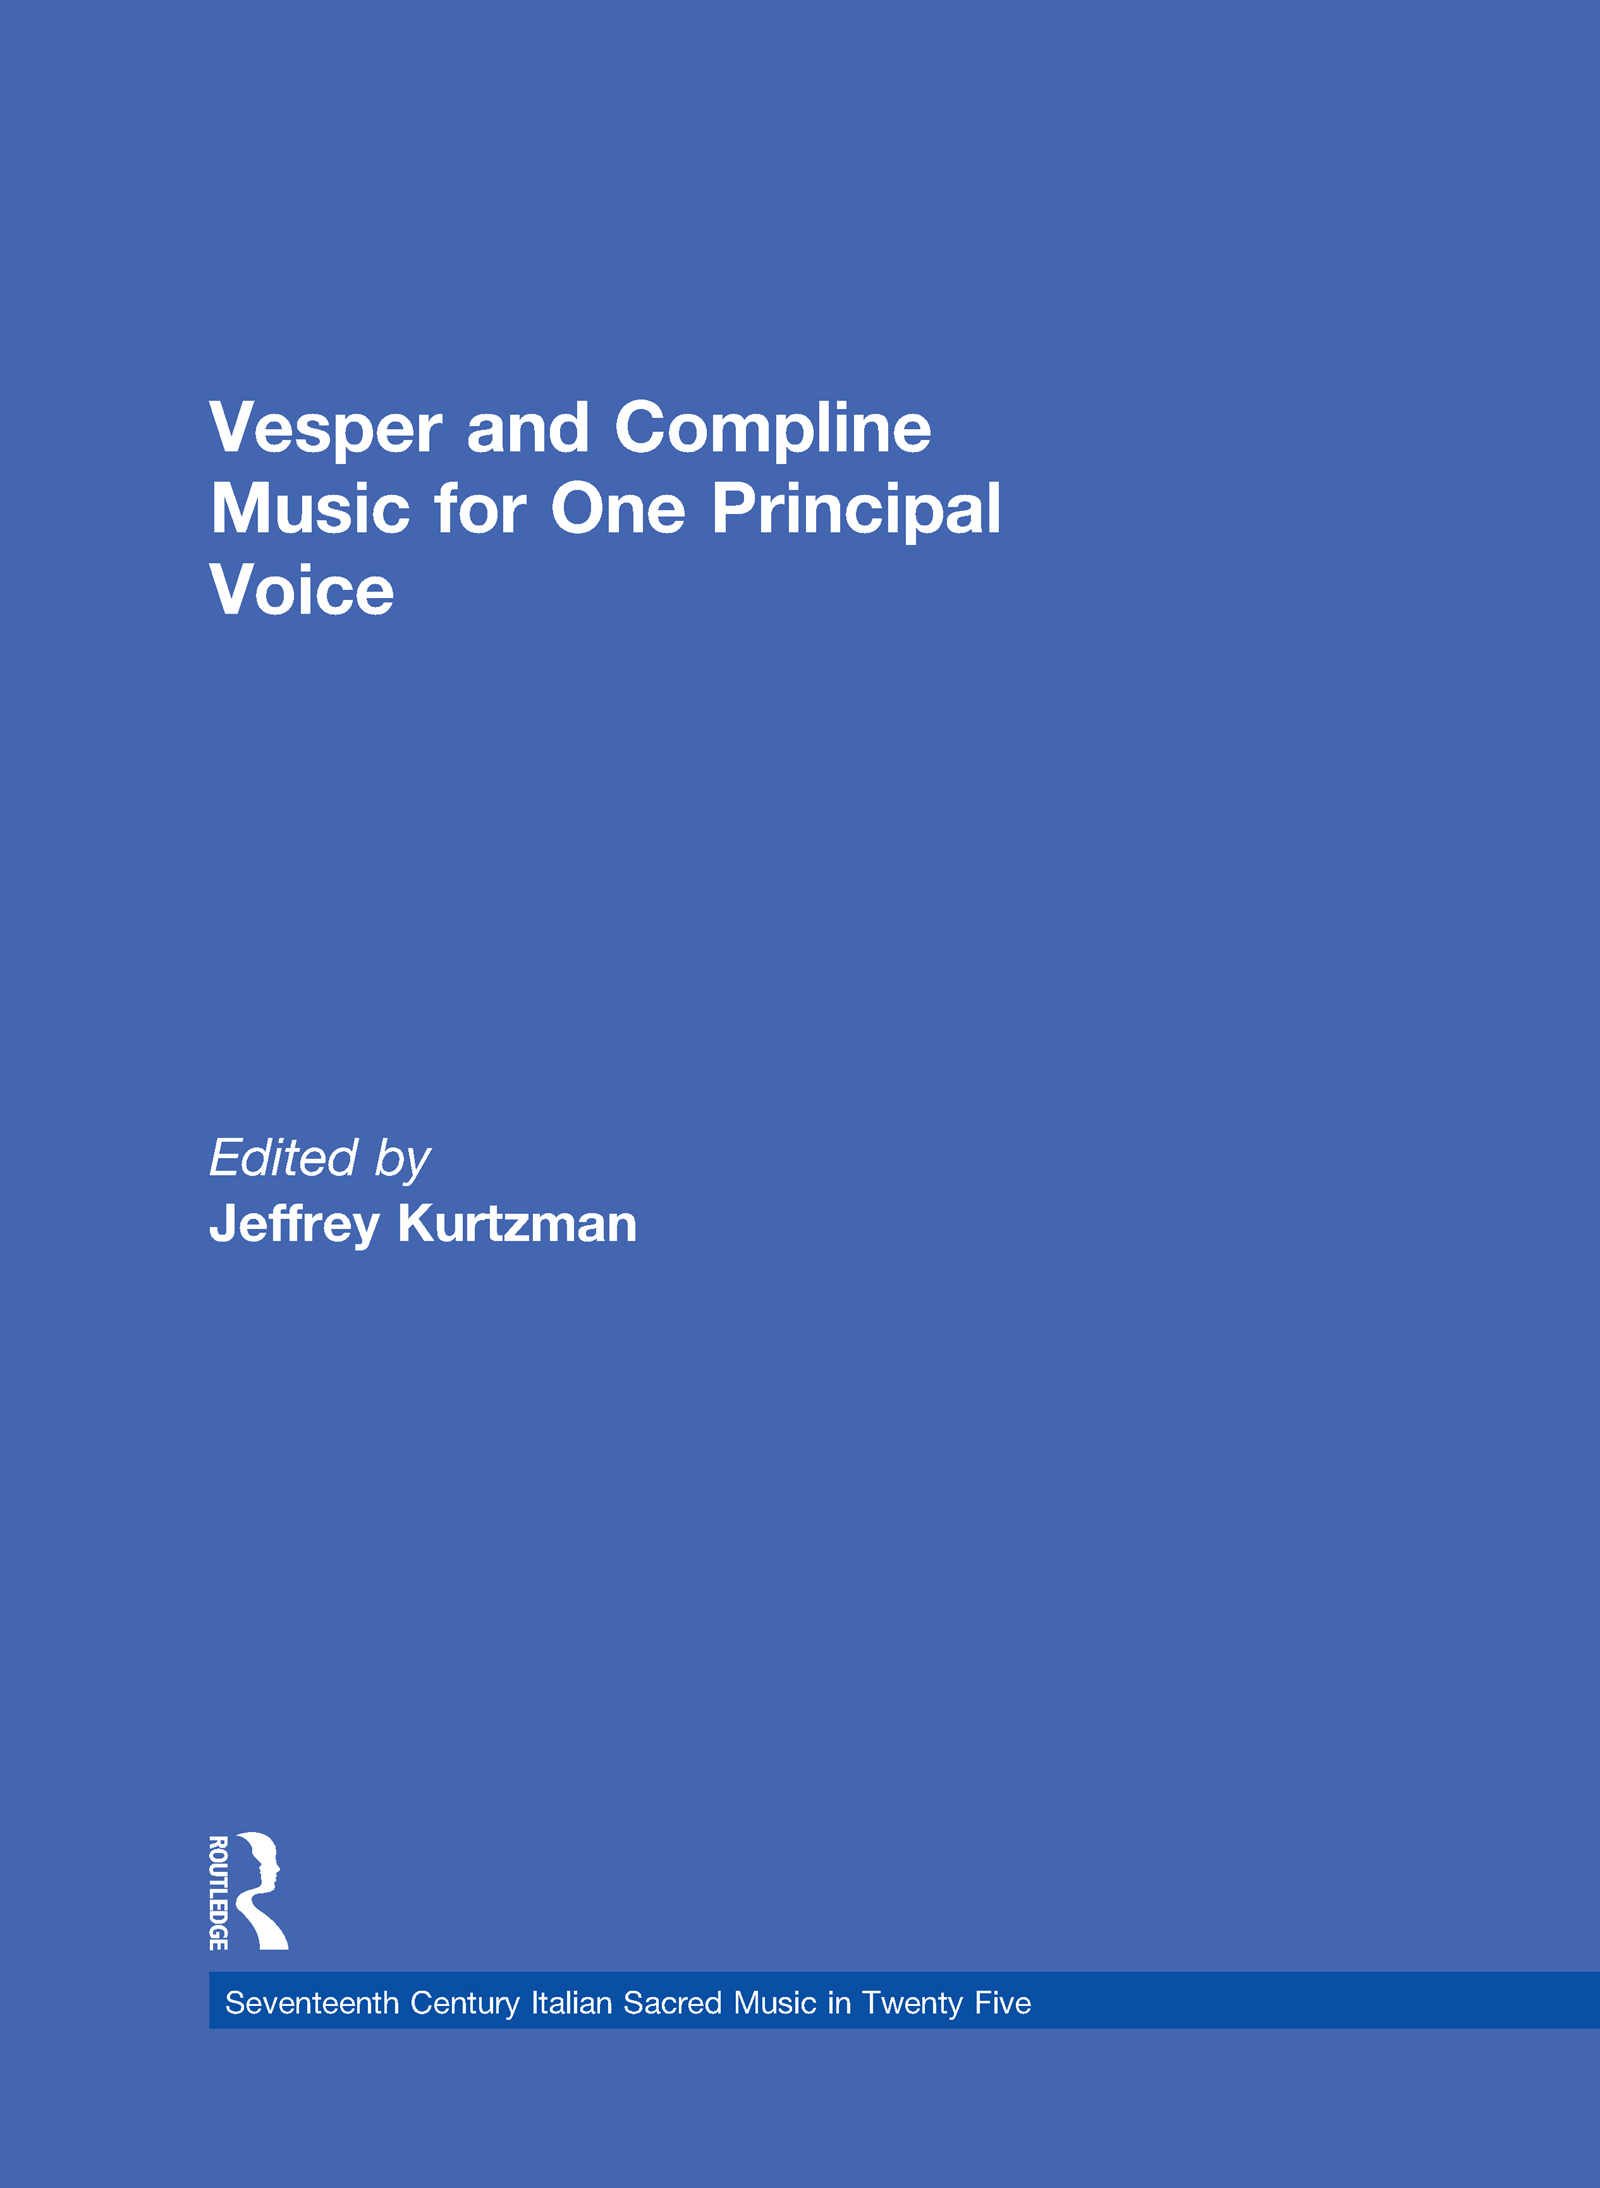 Vesper and Compline Music for One Principal Voice: Vesper & Compline Psalms & Canticles for One & Two Voices book cover